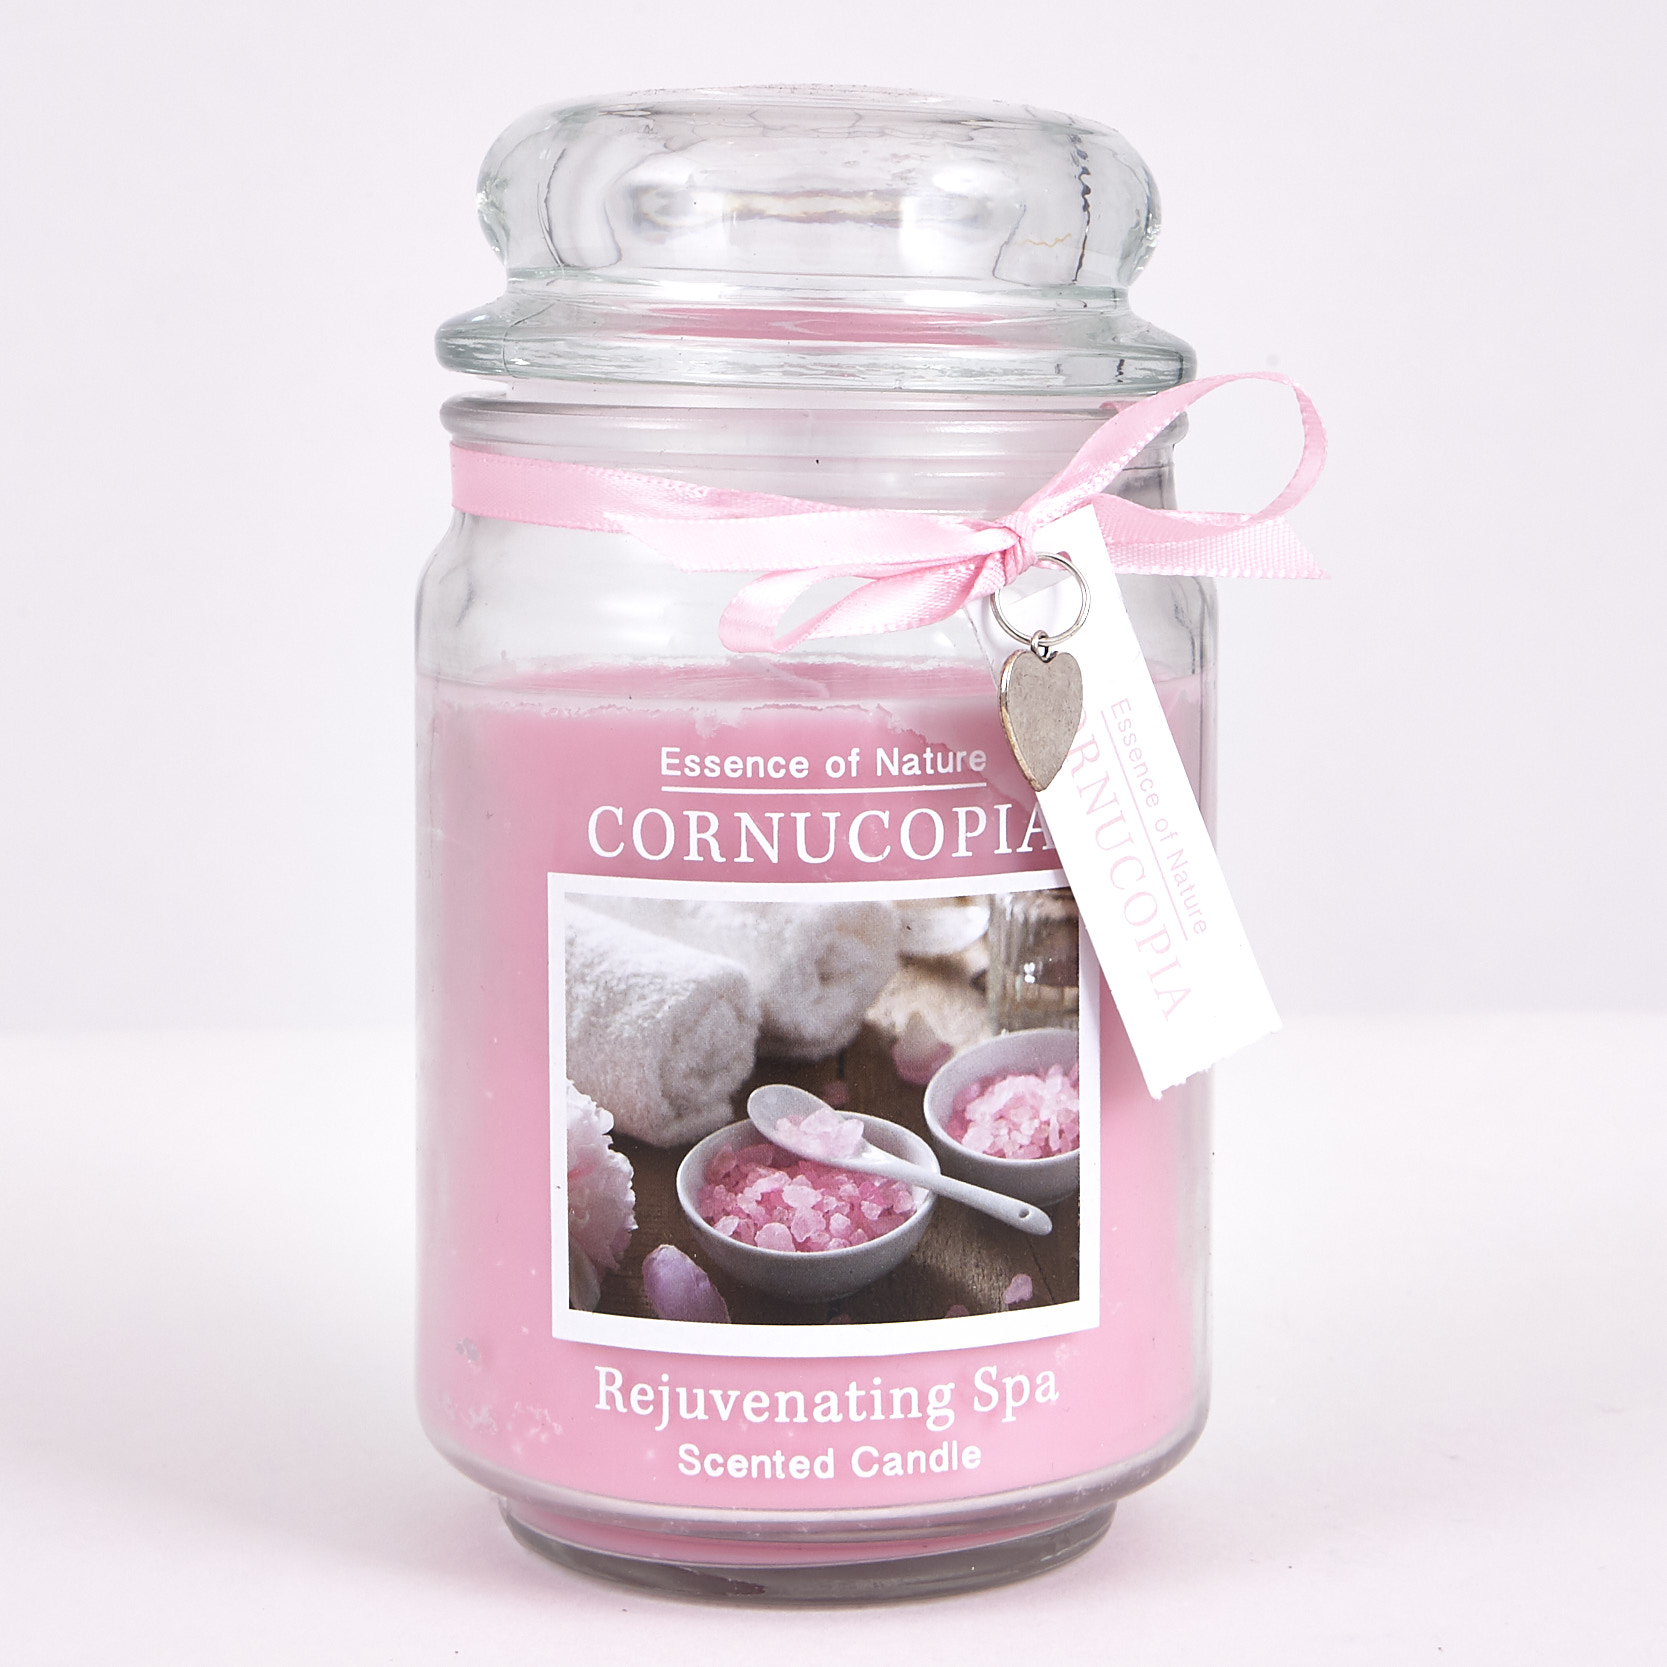 Cornucopia Rejuvenating Spa Scented Candle